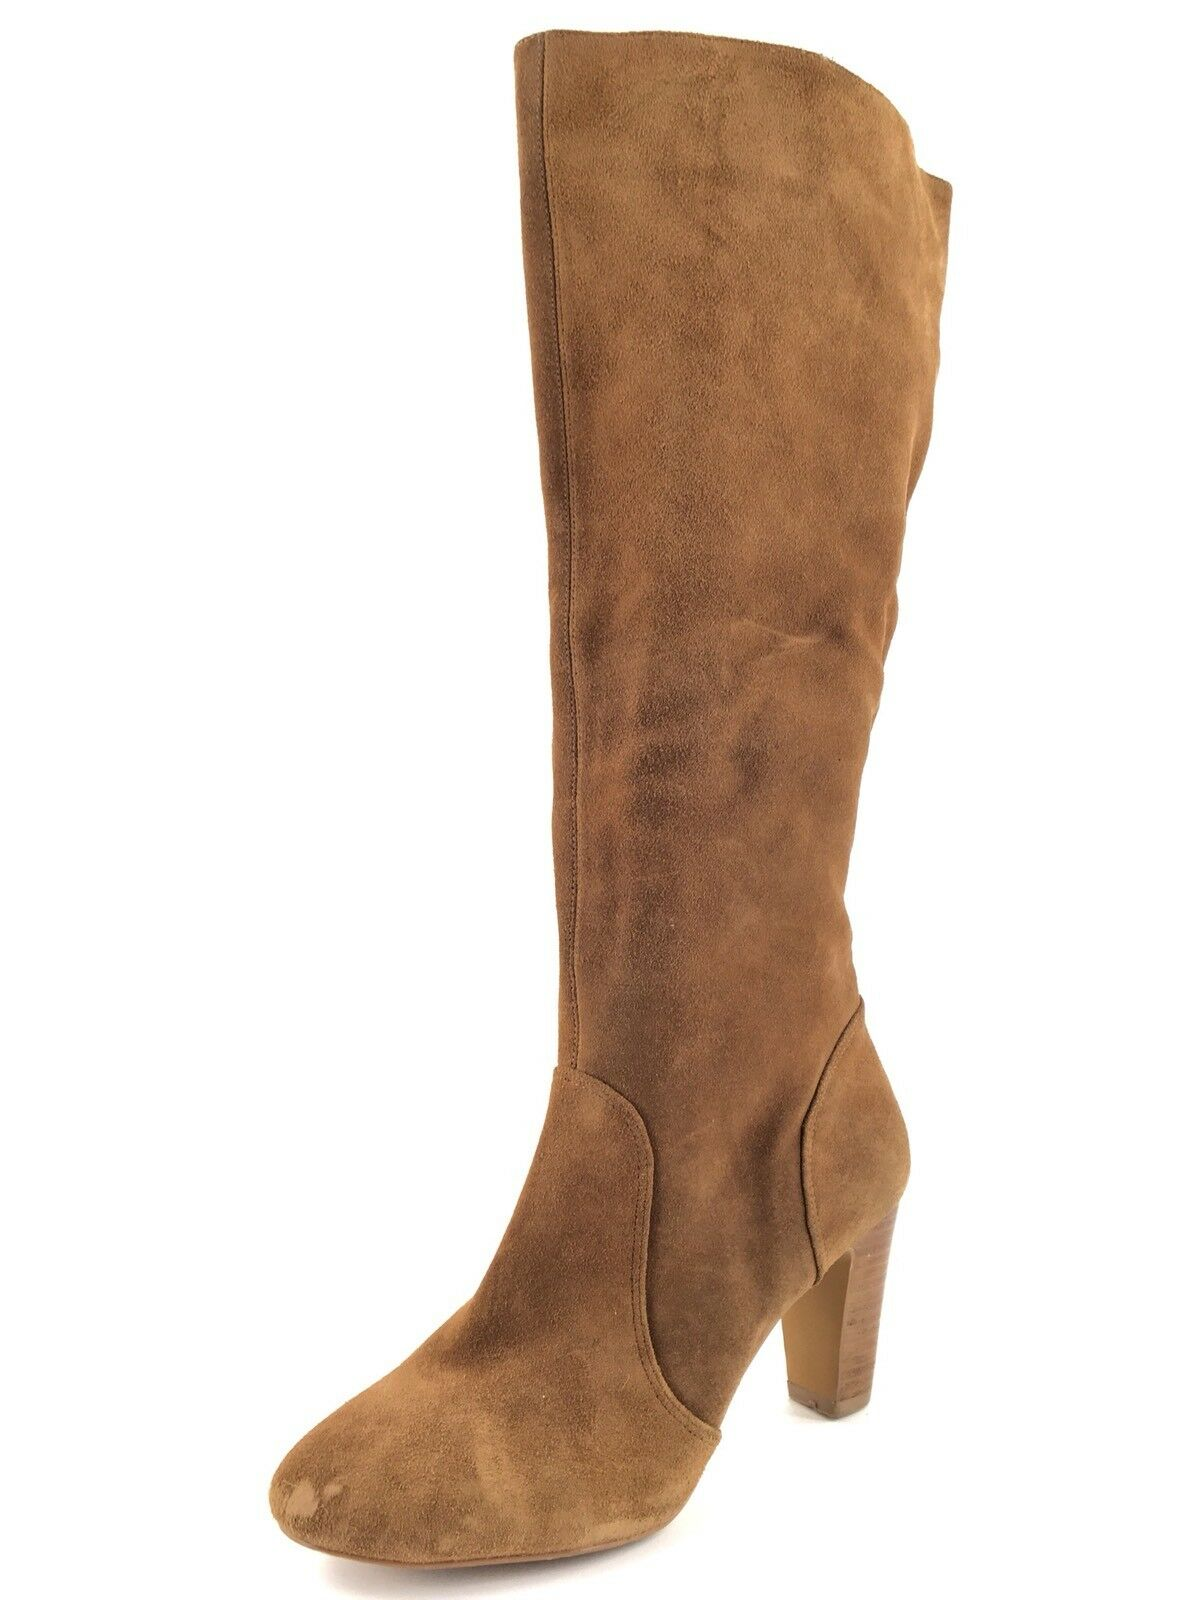 Sole Society Brandi Tan Suede Knee High Boots Women's Size 9 M *